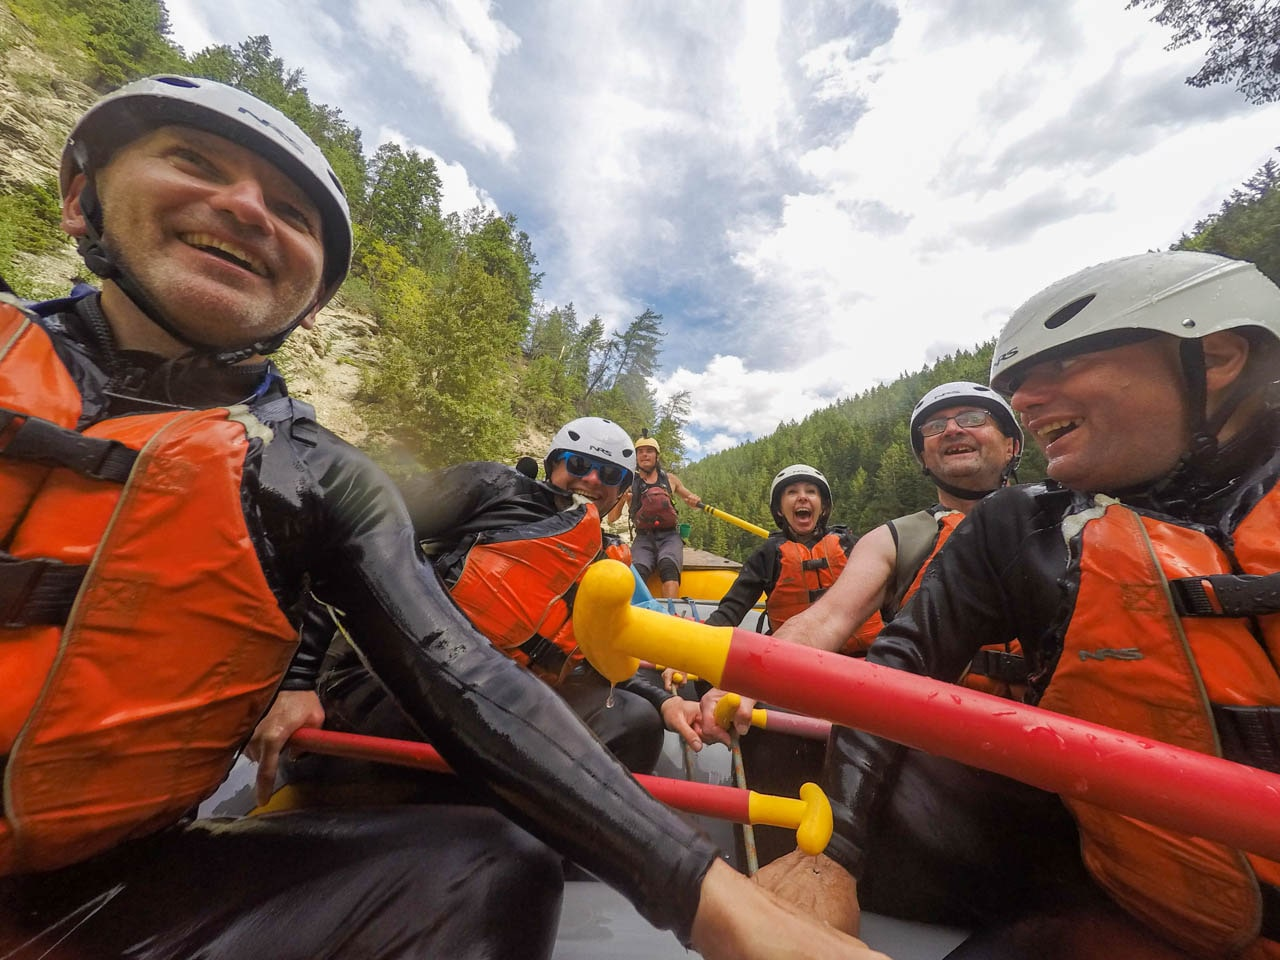 Glacier Raft Co guests heli rafting Kicking Horse River in Golden BC